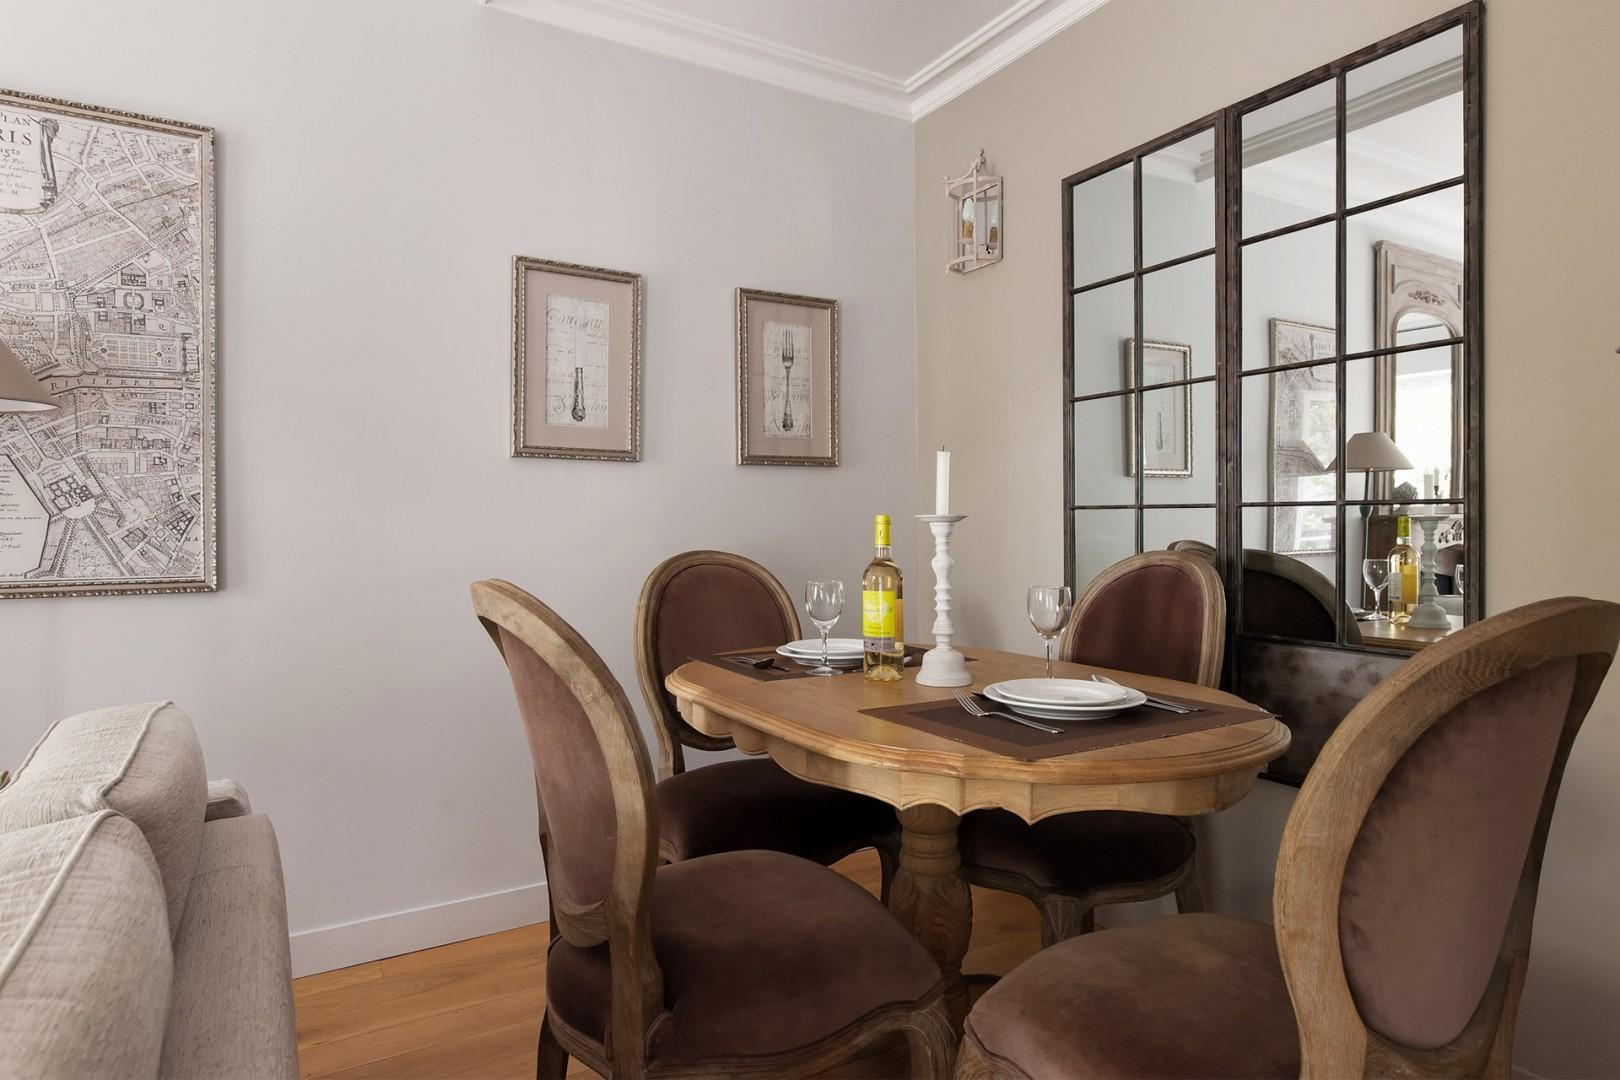 Enjoy French-style dinner parties at this elegant dining table for four.